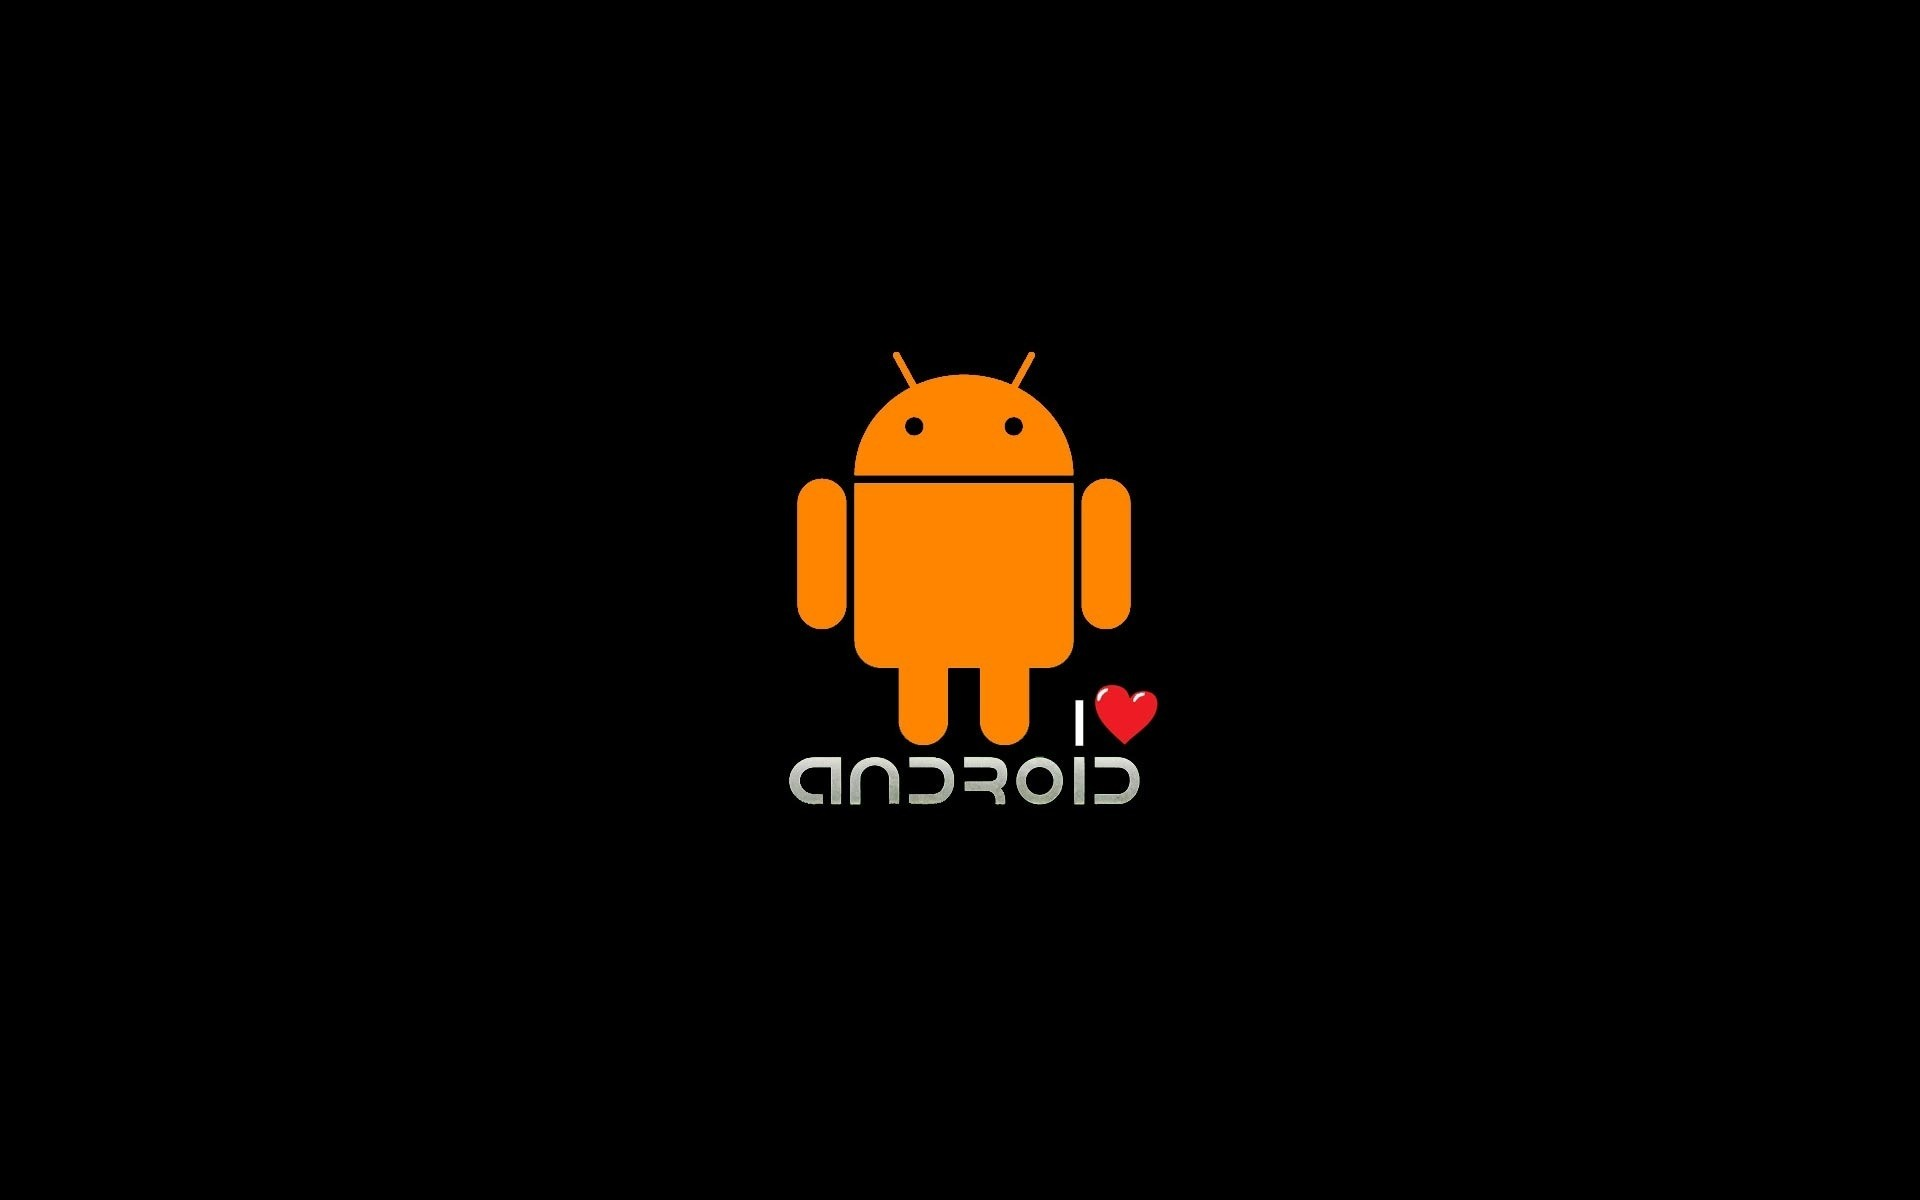 i love android. android wallpapers for free.